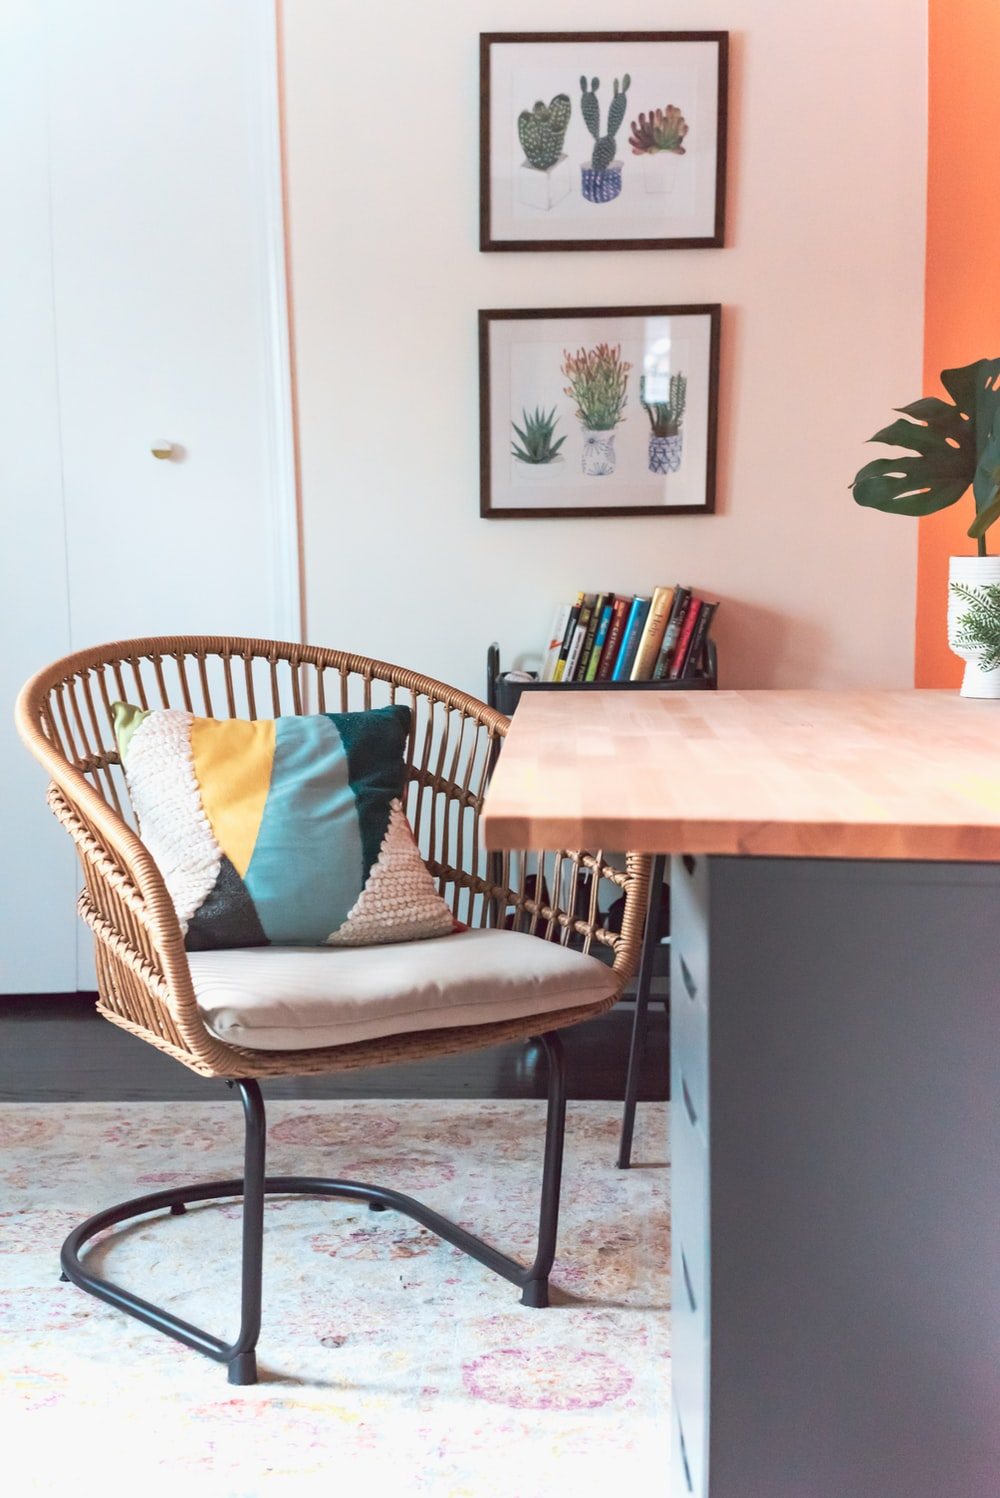 cantilever chair with throw pillow near table